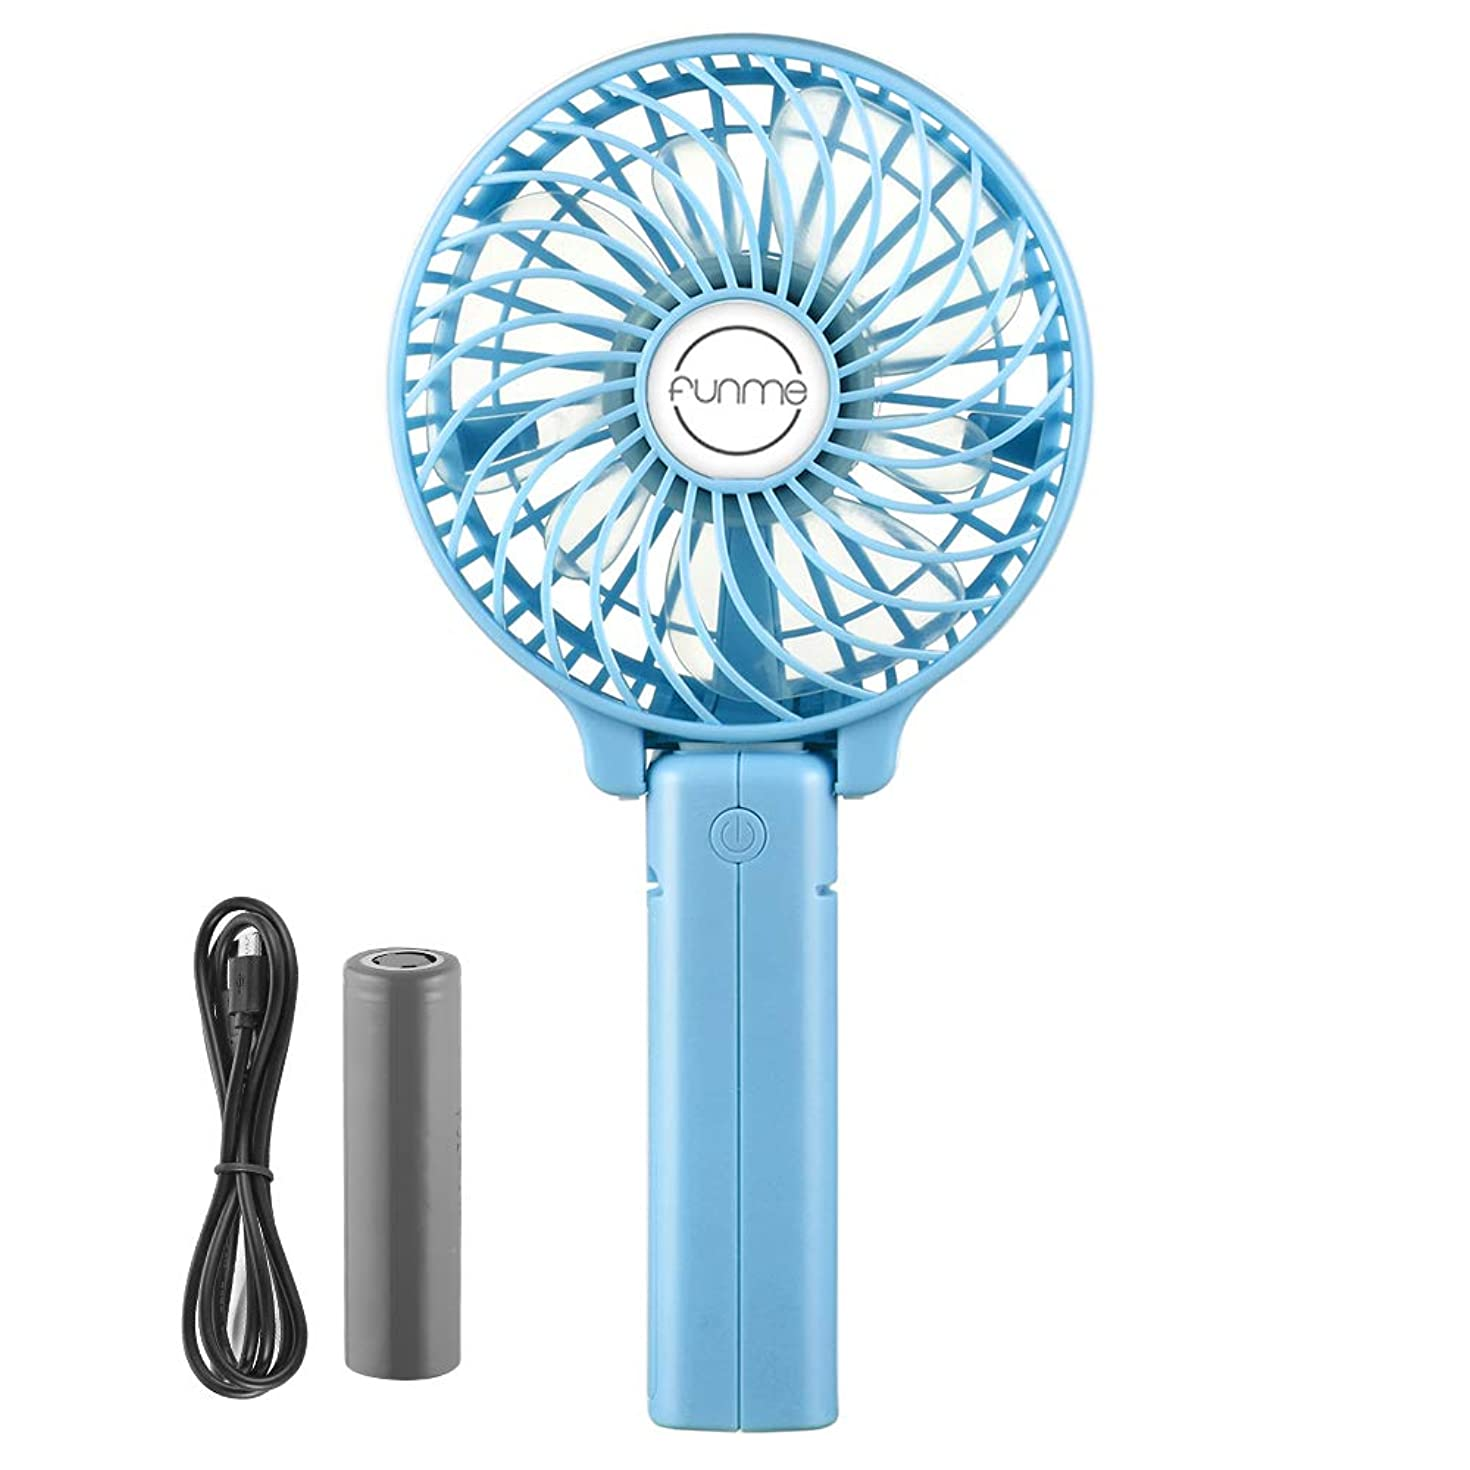 Funme Mini Handheld Fan Portable Foldable USB Rechargeable LG 2600mAh Battery Operated Electric Fan Personal Desktop Cooling Fan with 3 Speed for Office/Home/Travel/Outdoor-Blue